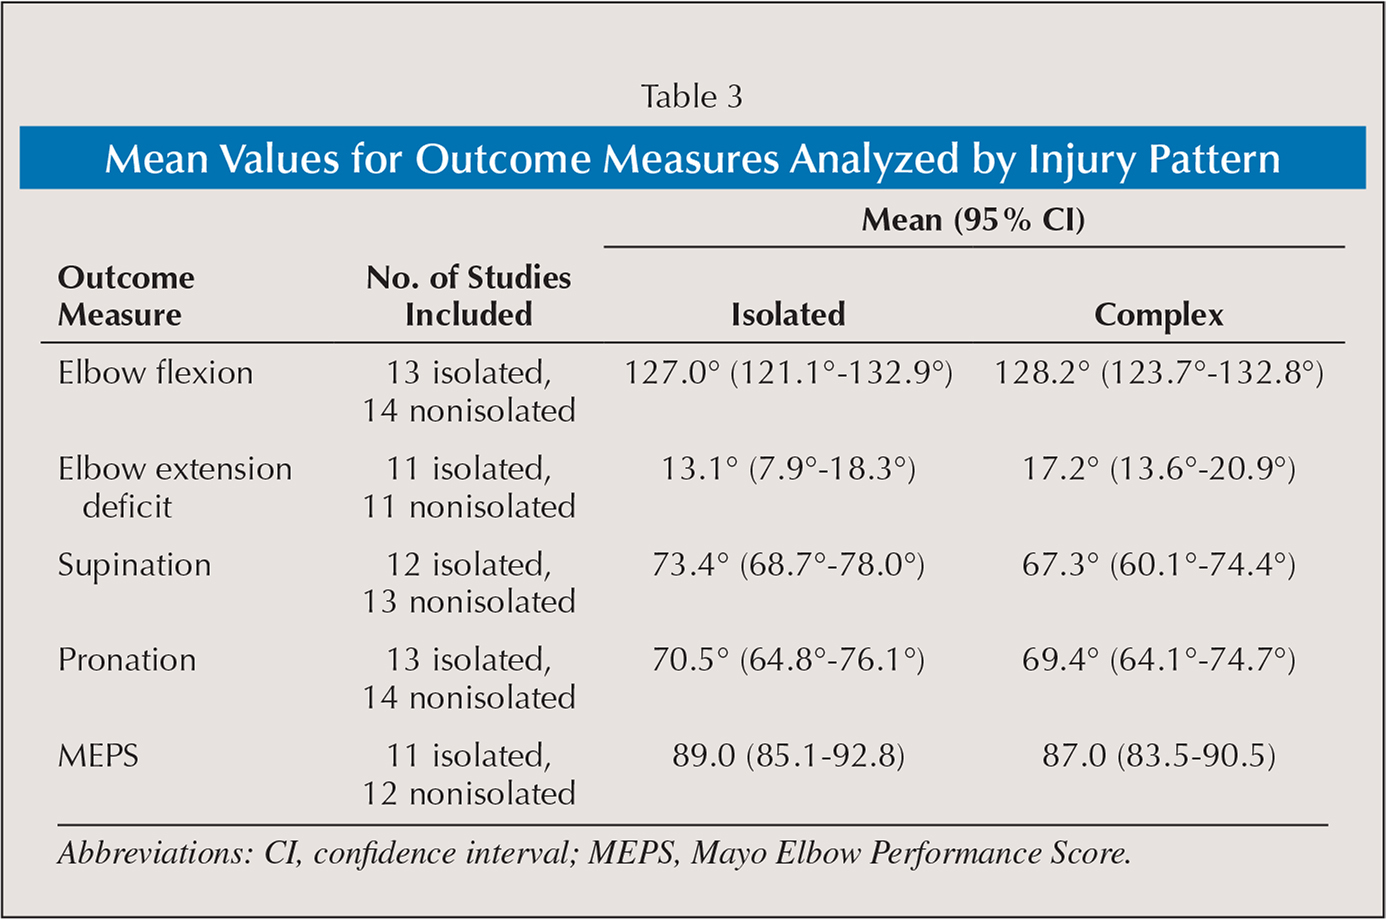 Mean Values for Outcome Measures Analyzed by Injury Pattern